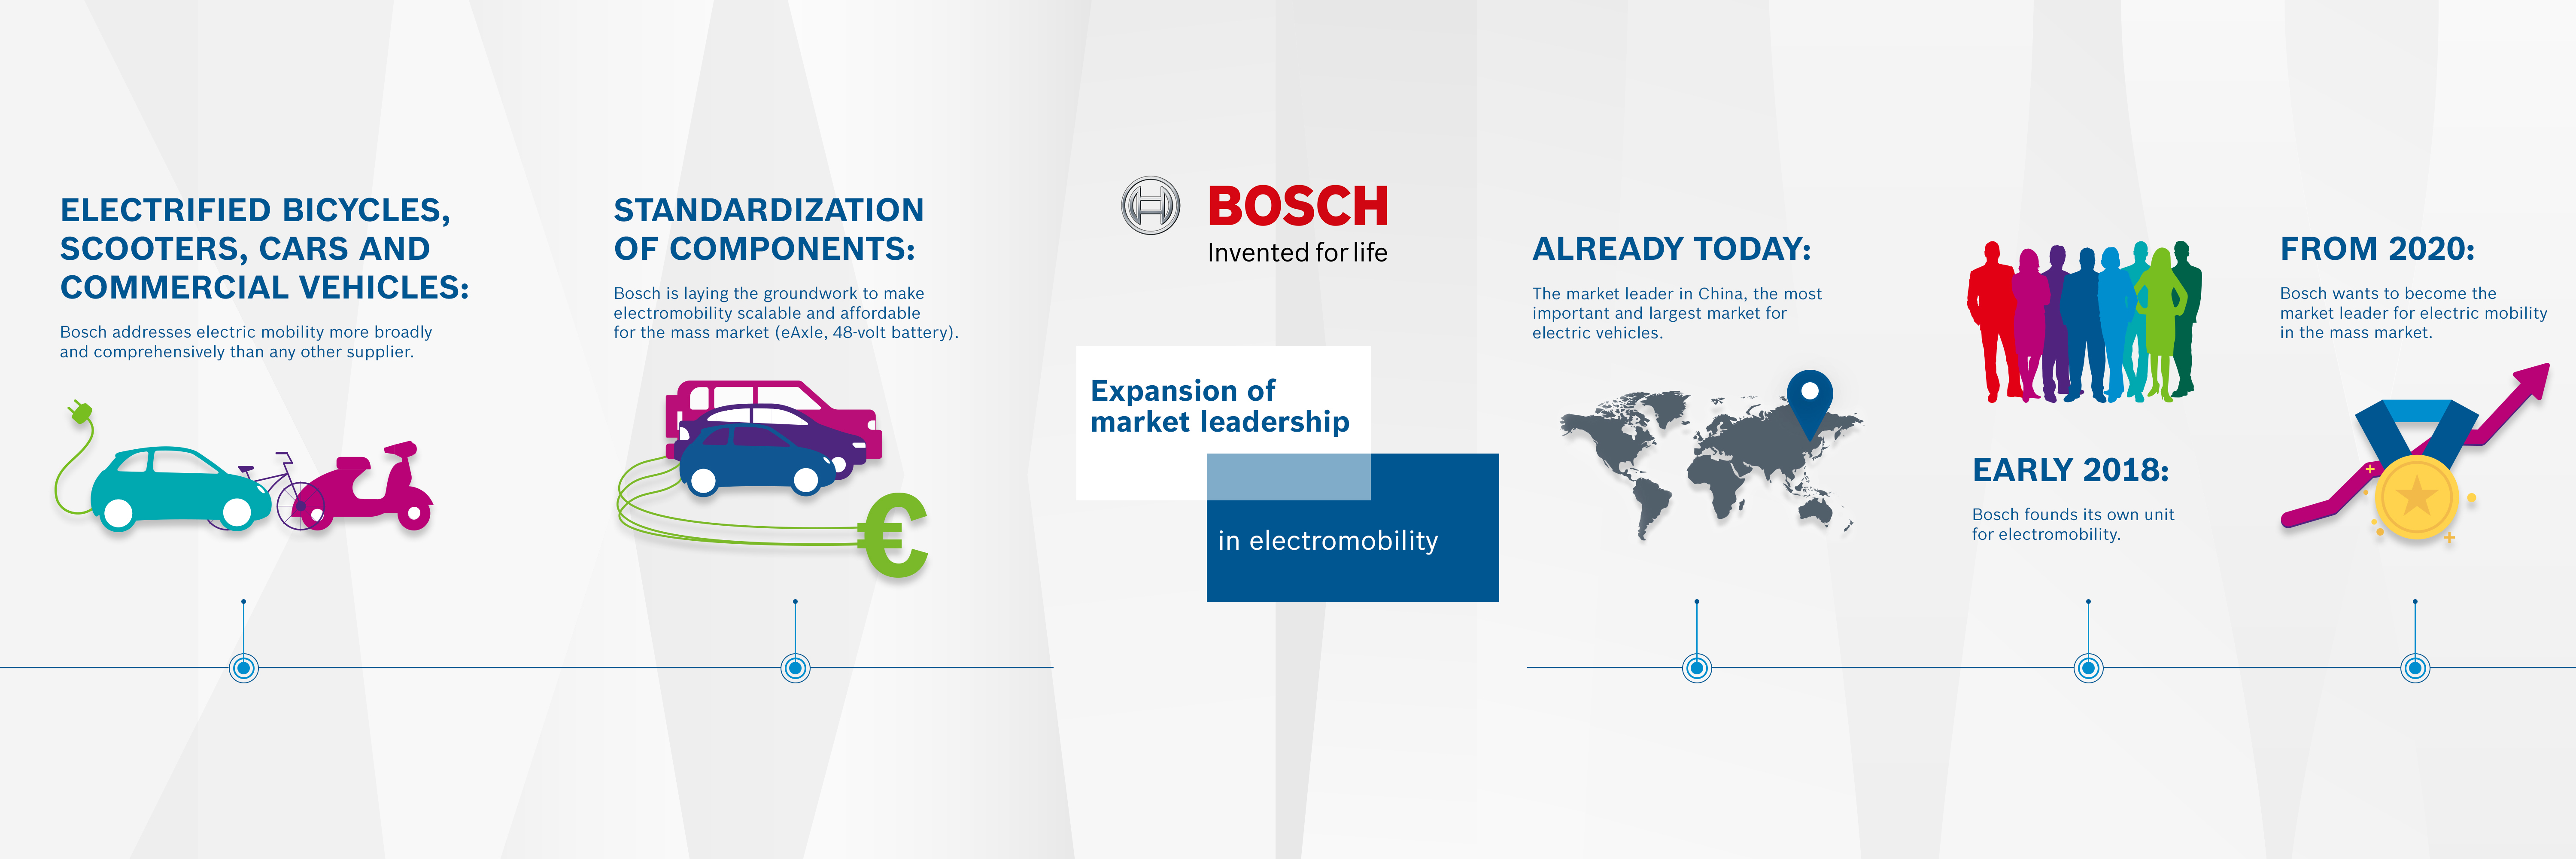 Battery Cells Bosch Opts For Outsourcing Over In House